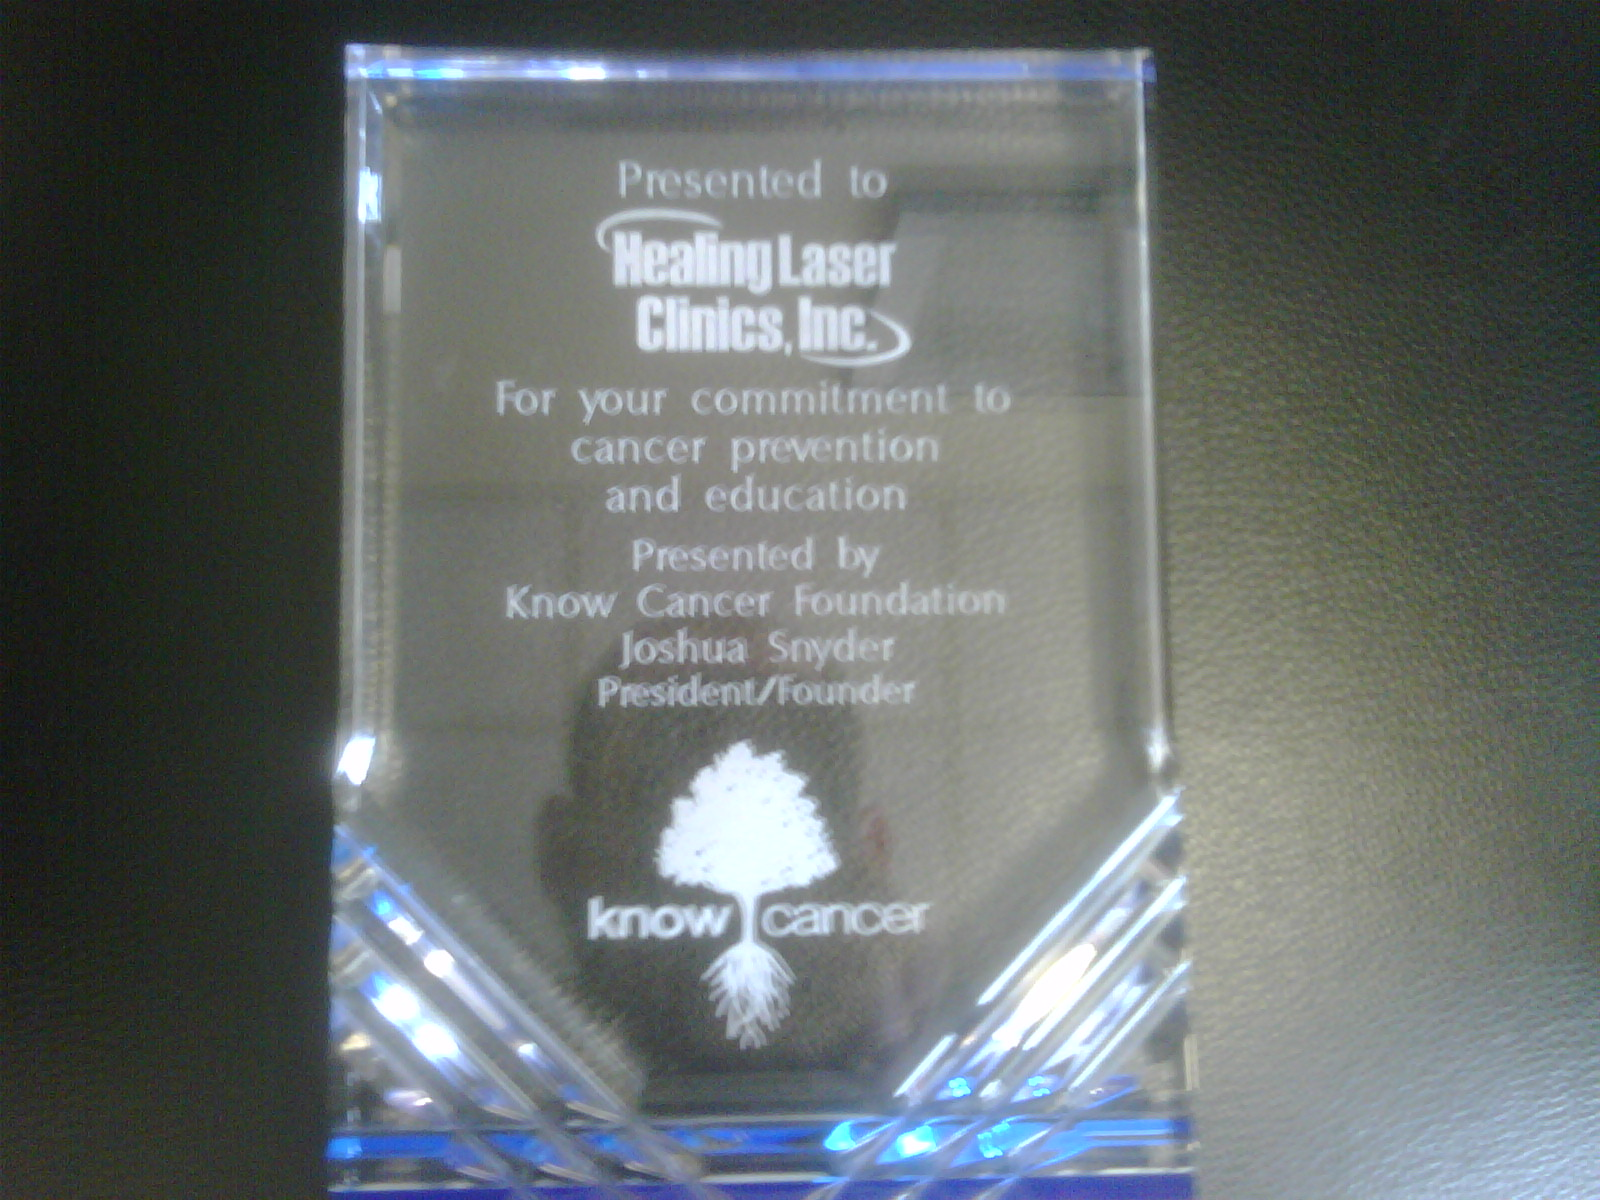 Know Cancer awards Healing Laser Clinics for thier committment to cancer prevention and education!